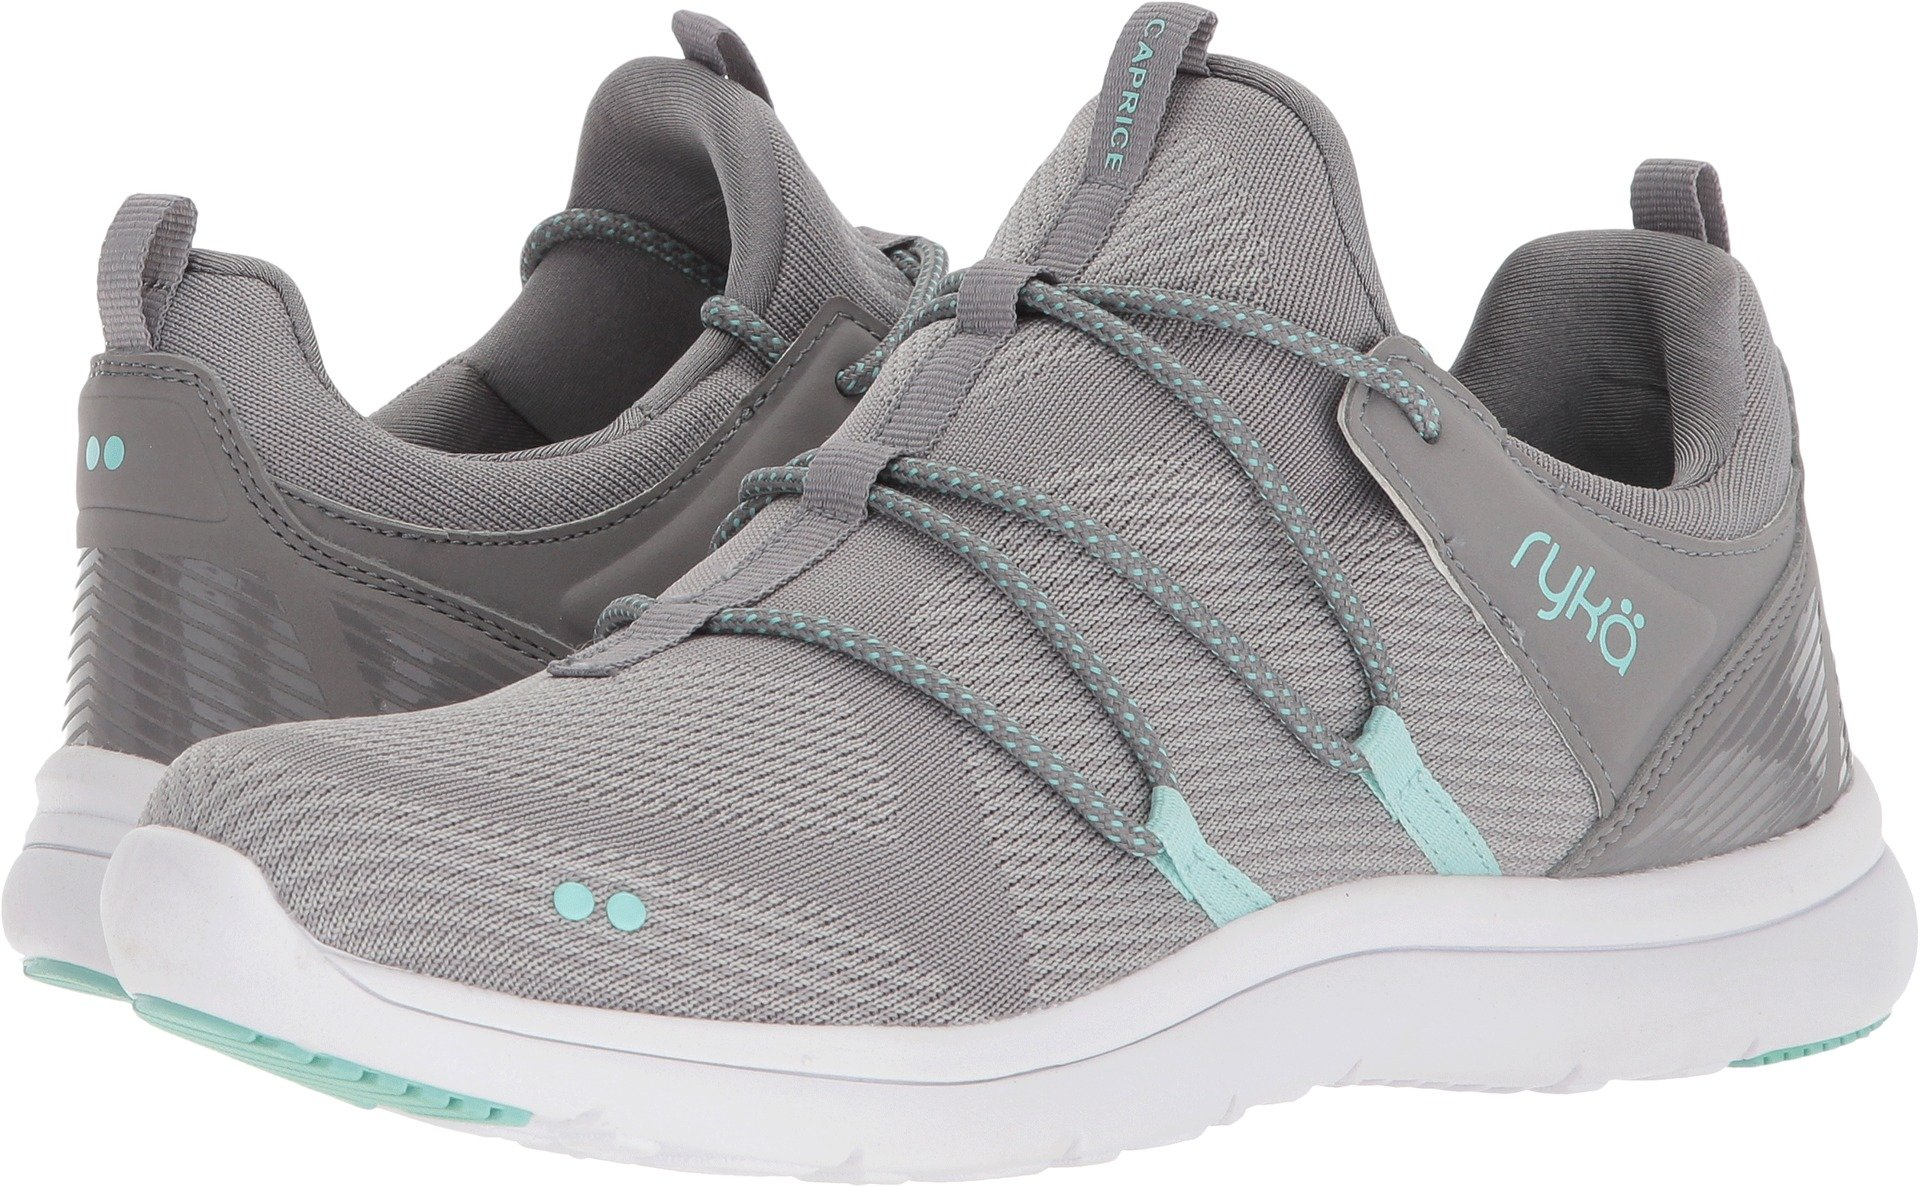 Ryka Women's Caprice, Frost Grey/Yucca Mint/Chrome Silver, 11 B